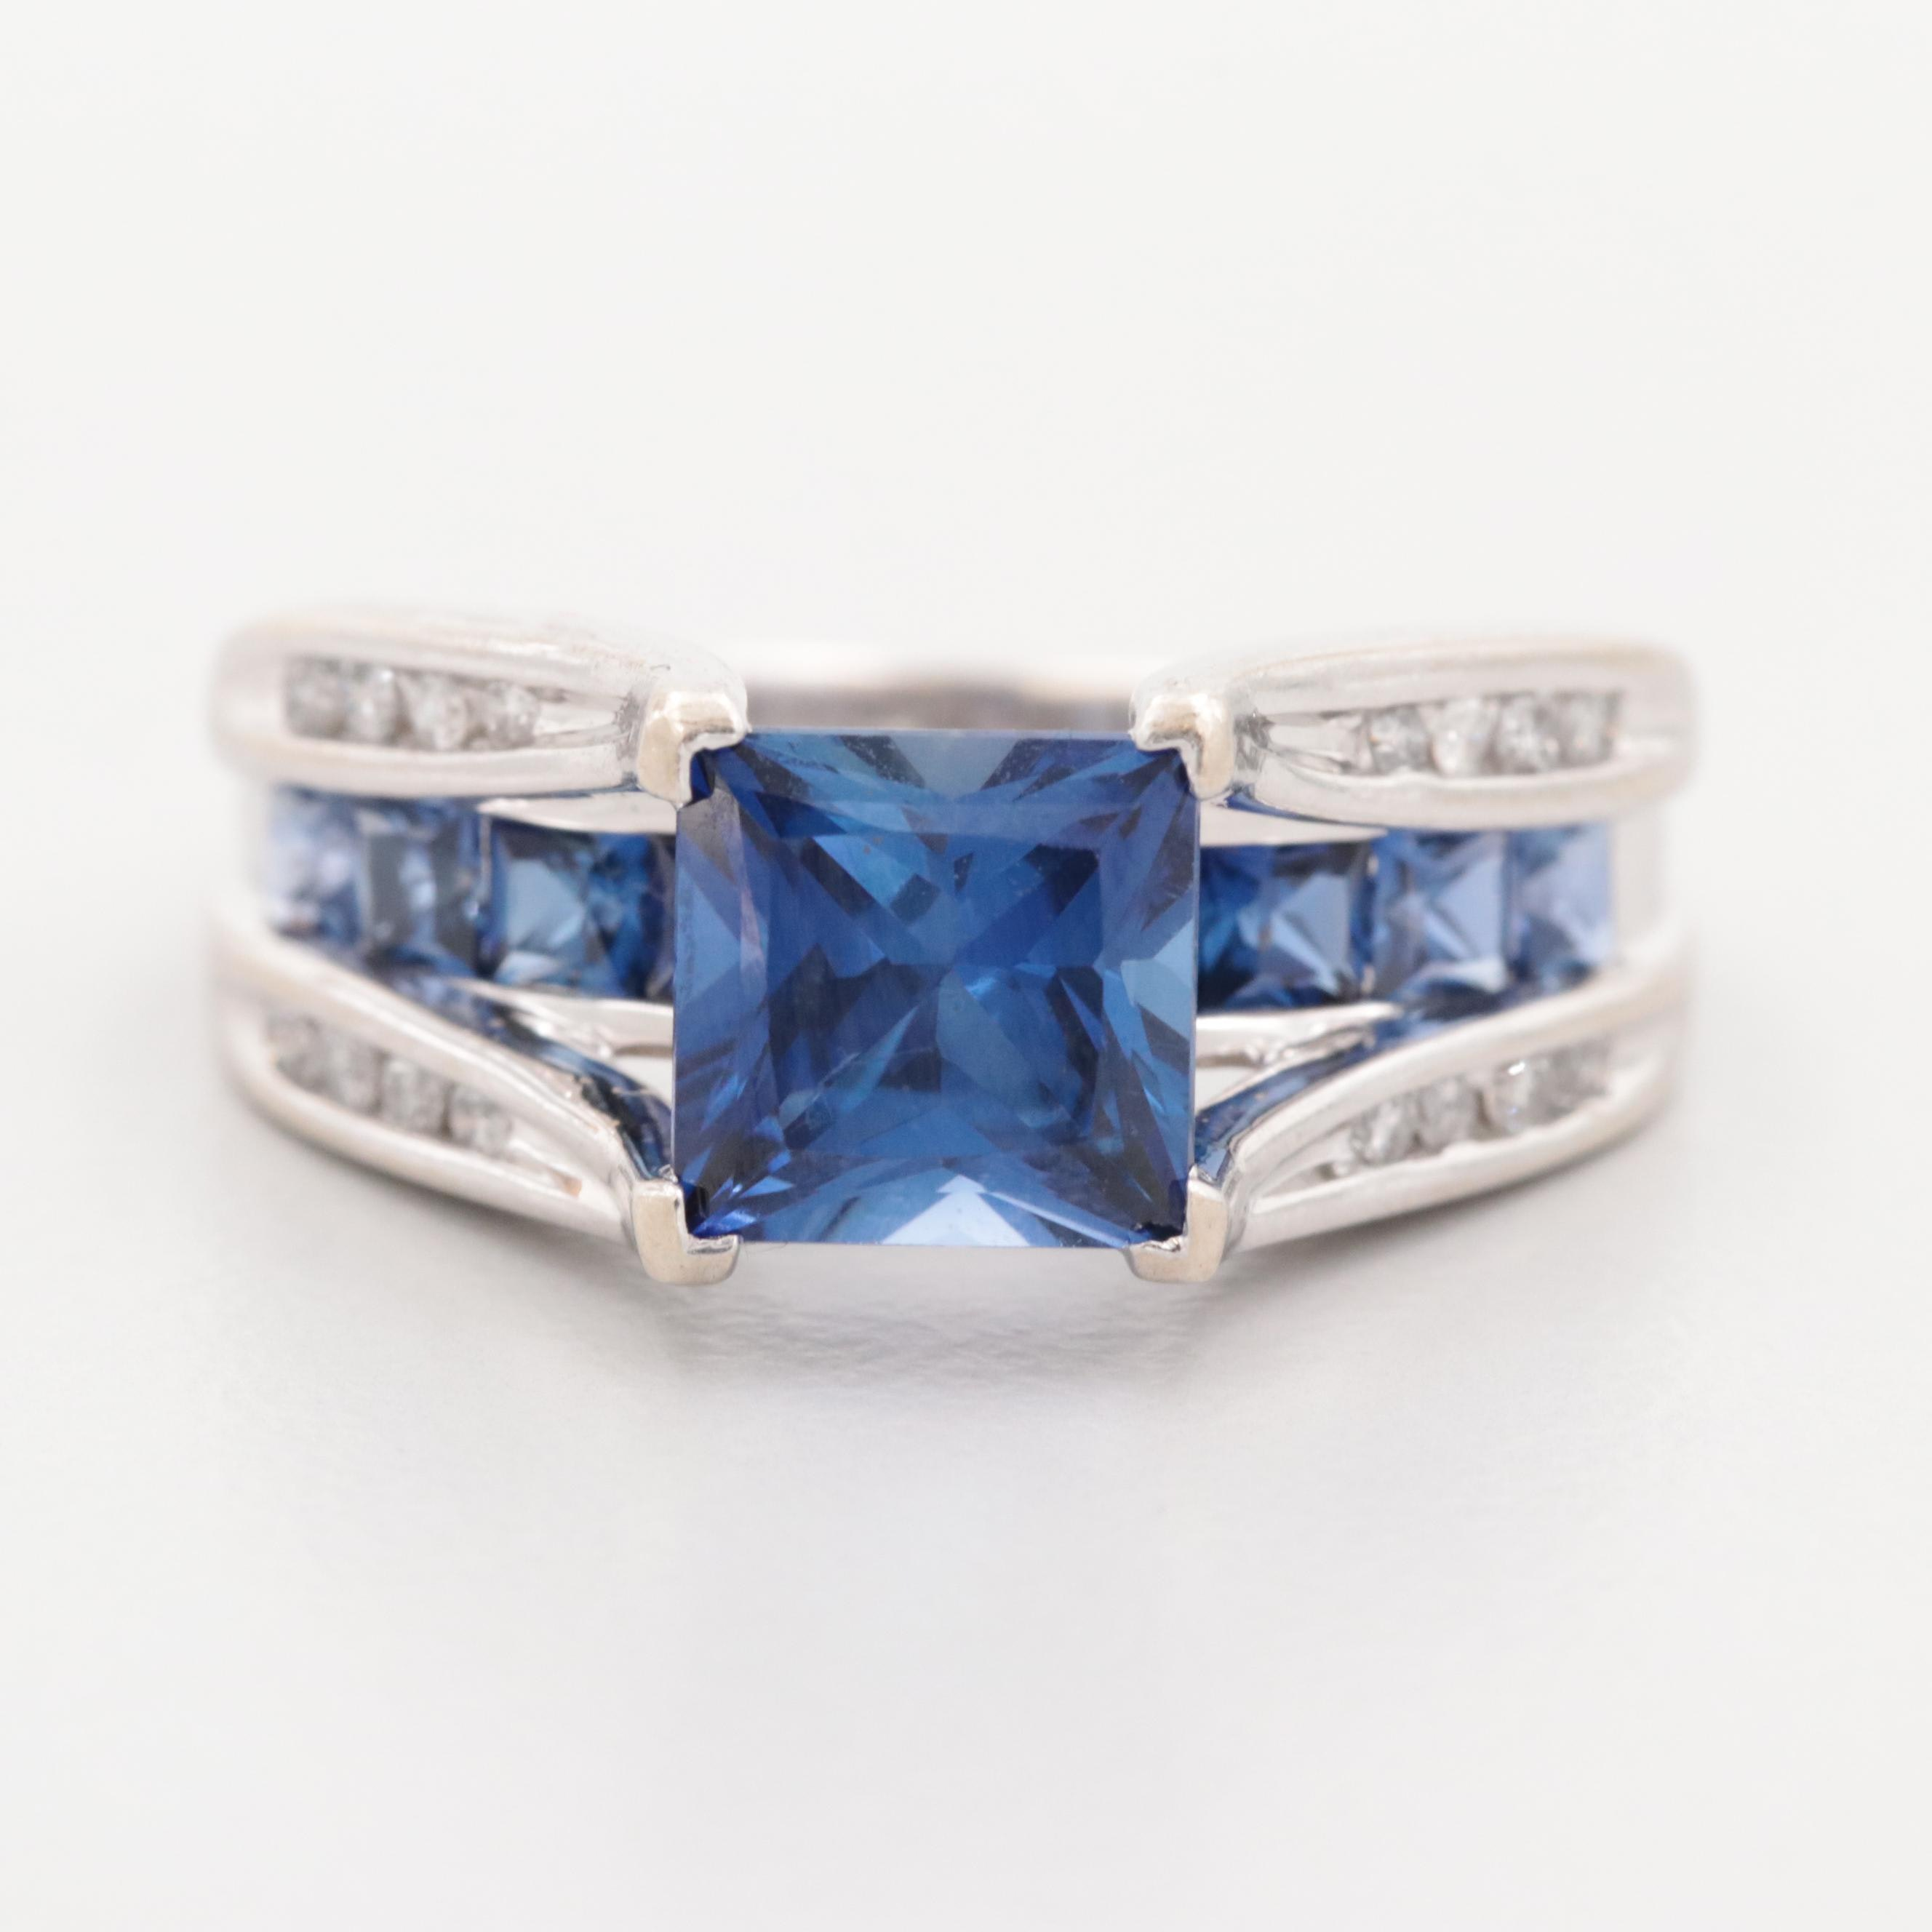 10K White Gold Synthetic Sapphire and Diamond Ring